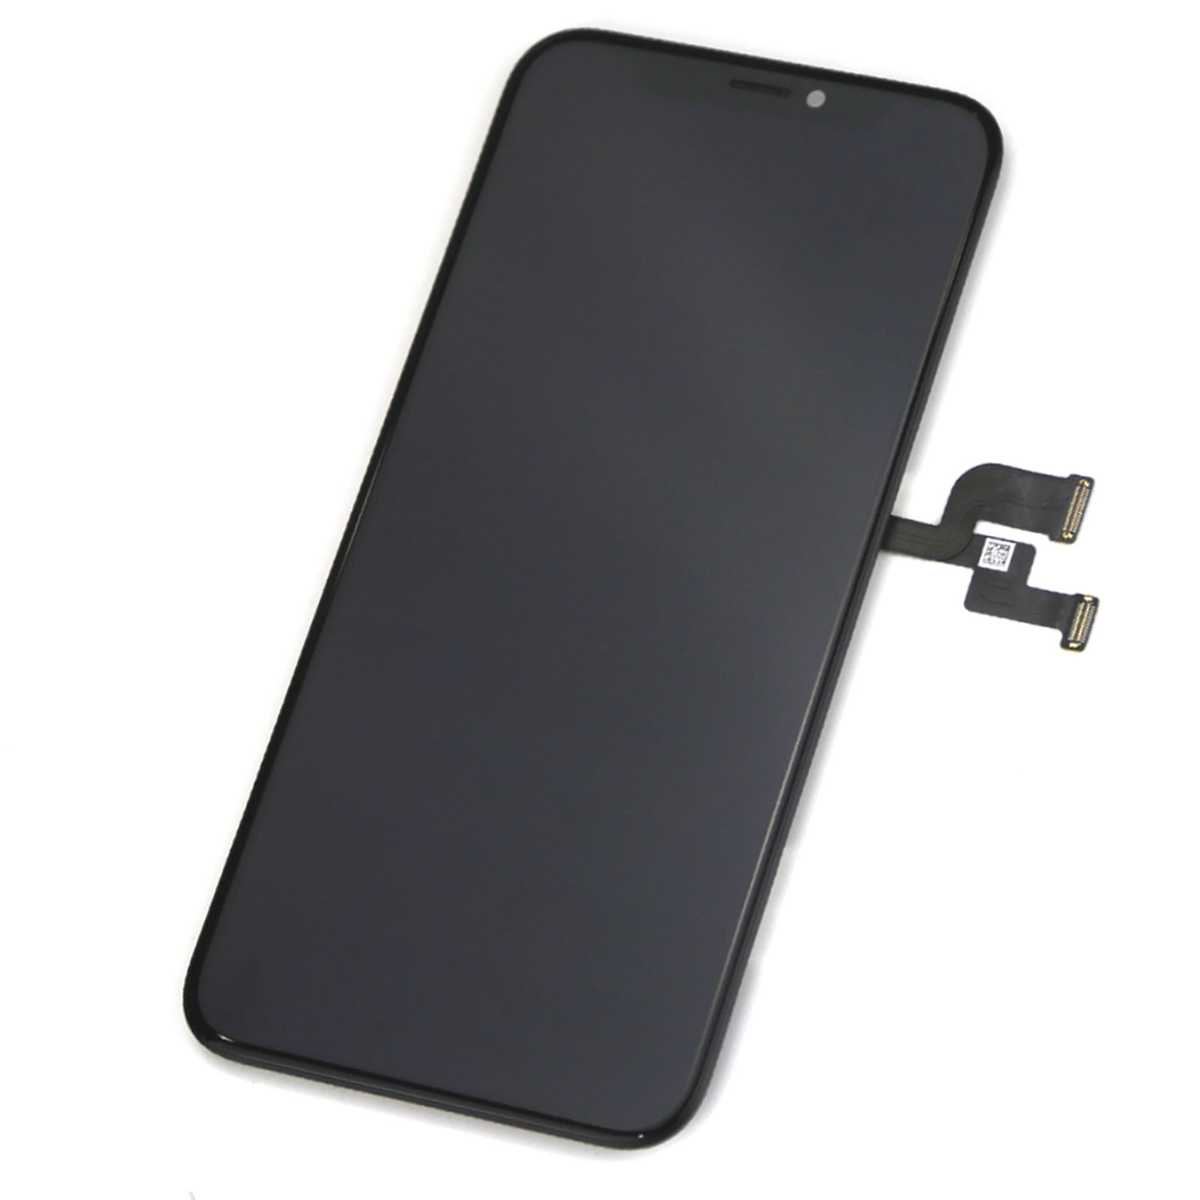 save off 806c6 00f6d Complete original Display teared down from iPhone X | Sintech-Shop -  Replacement parts for mobile consoles and more